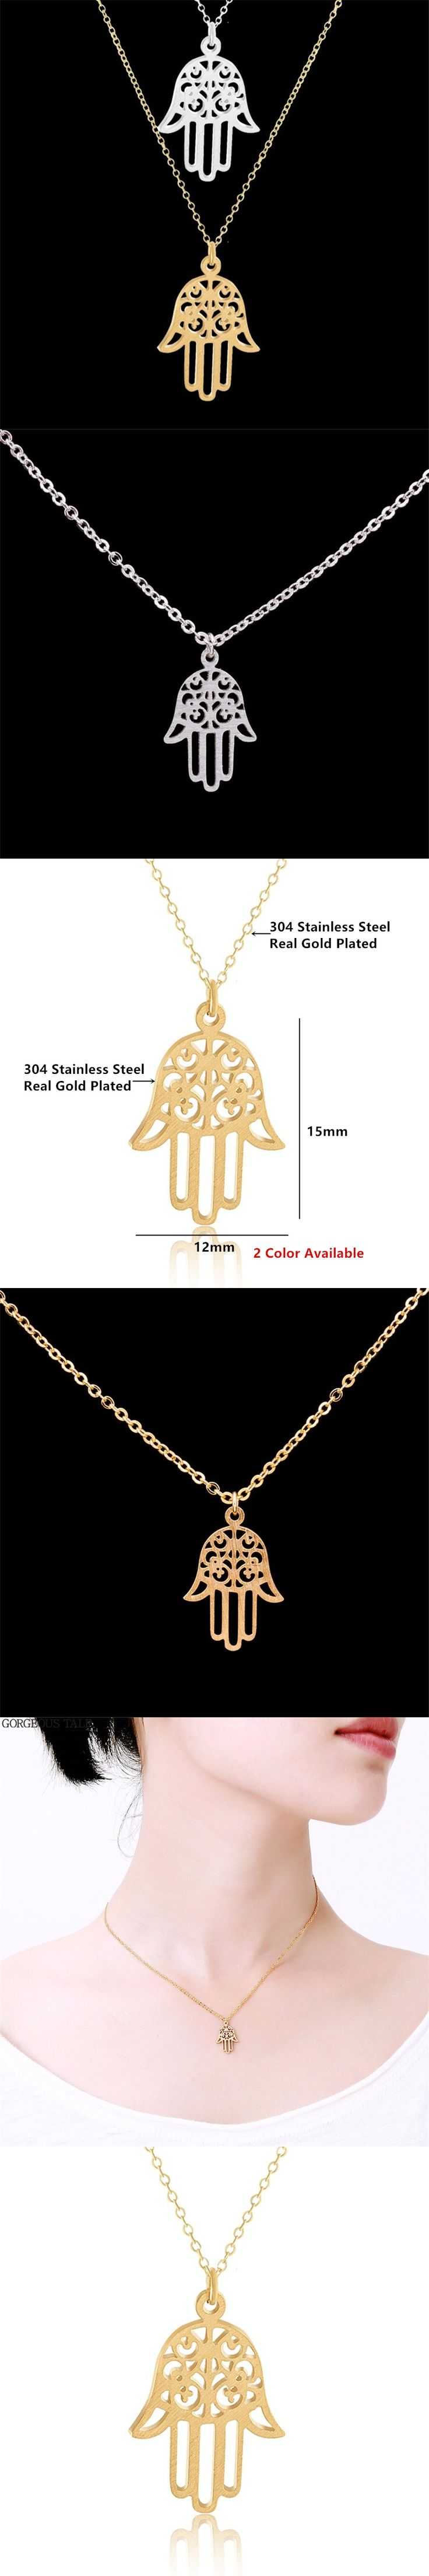 GORGEOUS TALE Luck Protection Fatima Hand Evil Eye Pendant Necklace For Women Stainless steel Jewelry Gold Bohemian Chokers